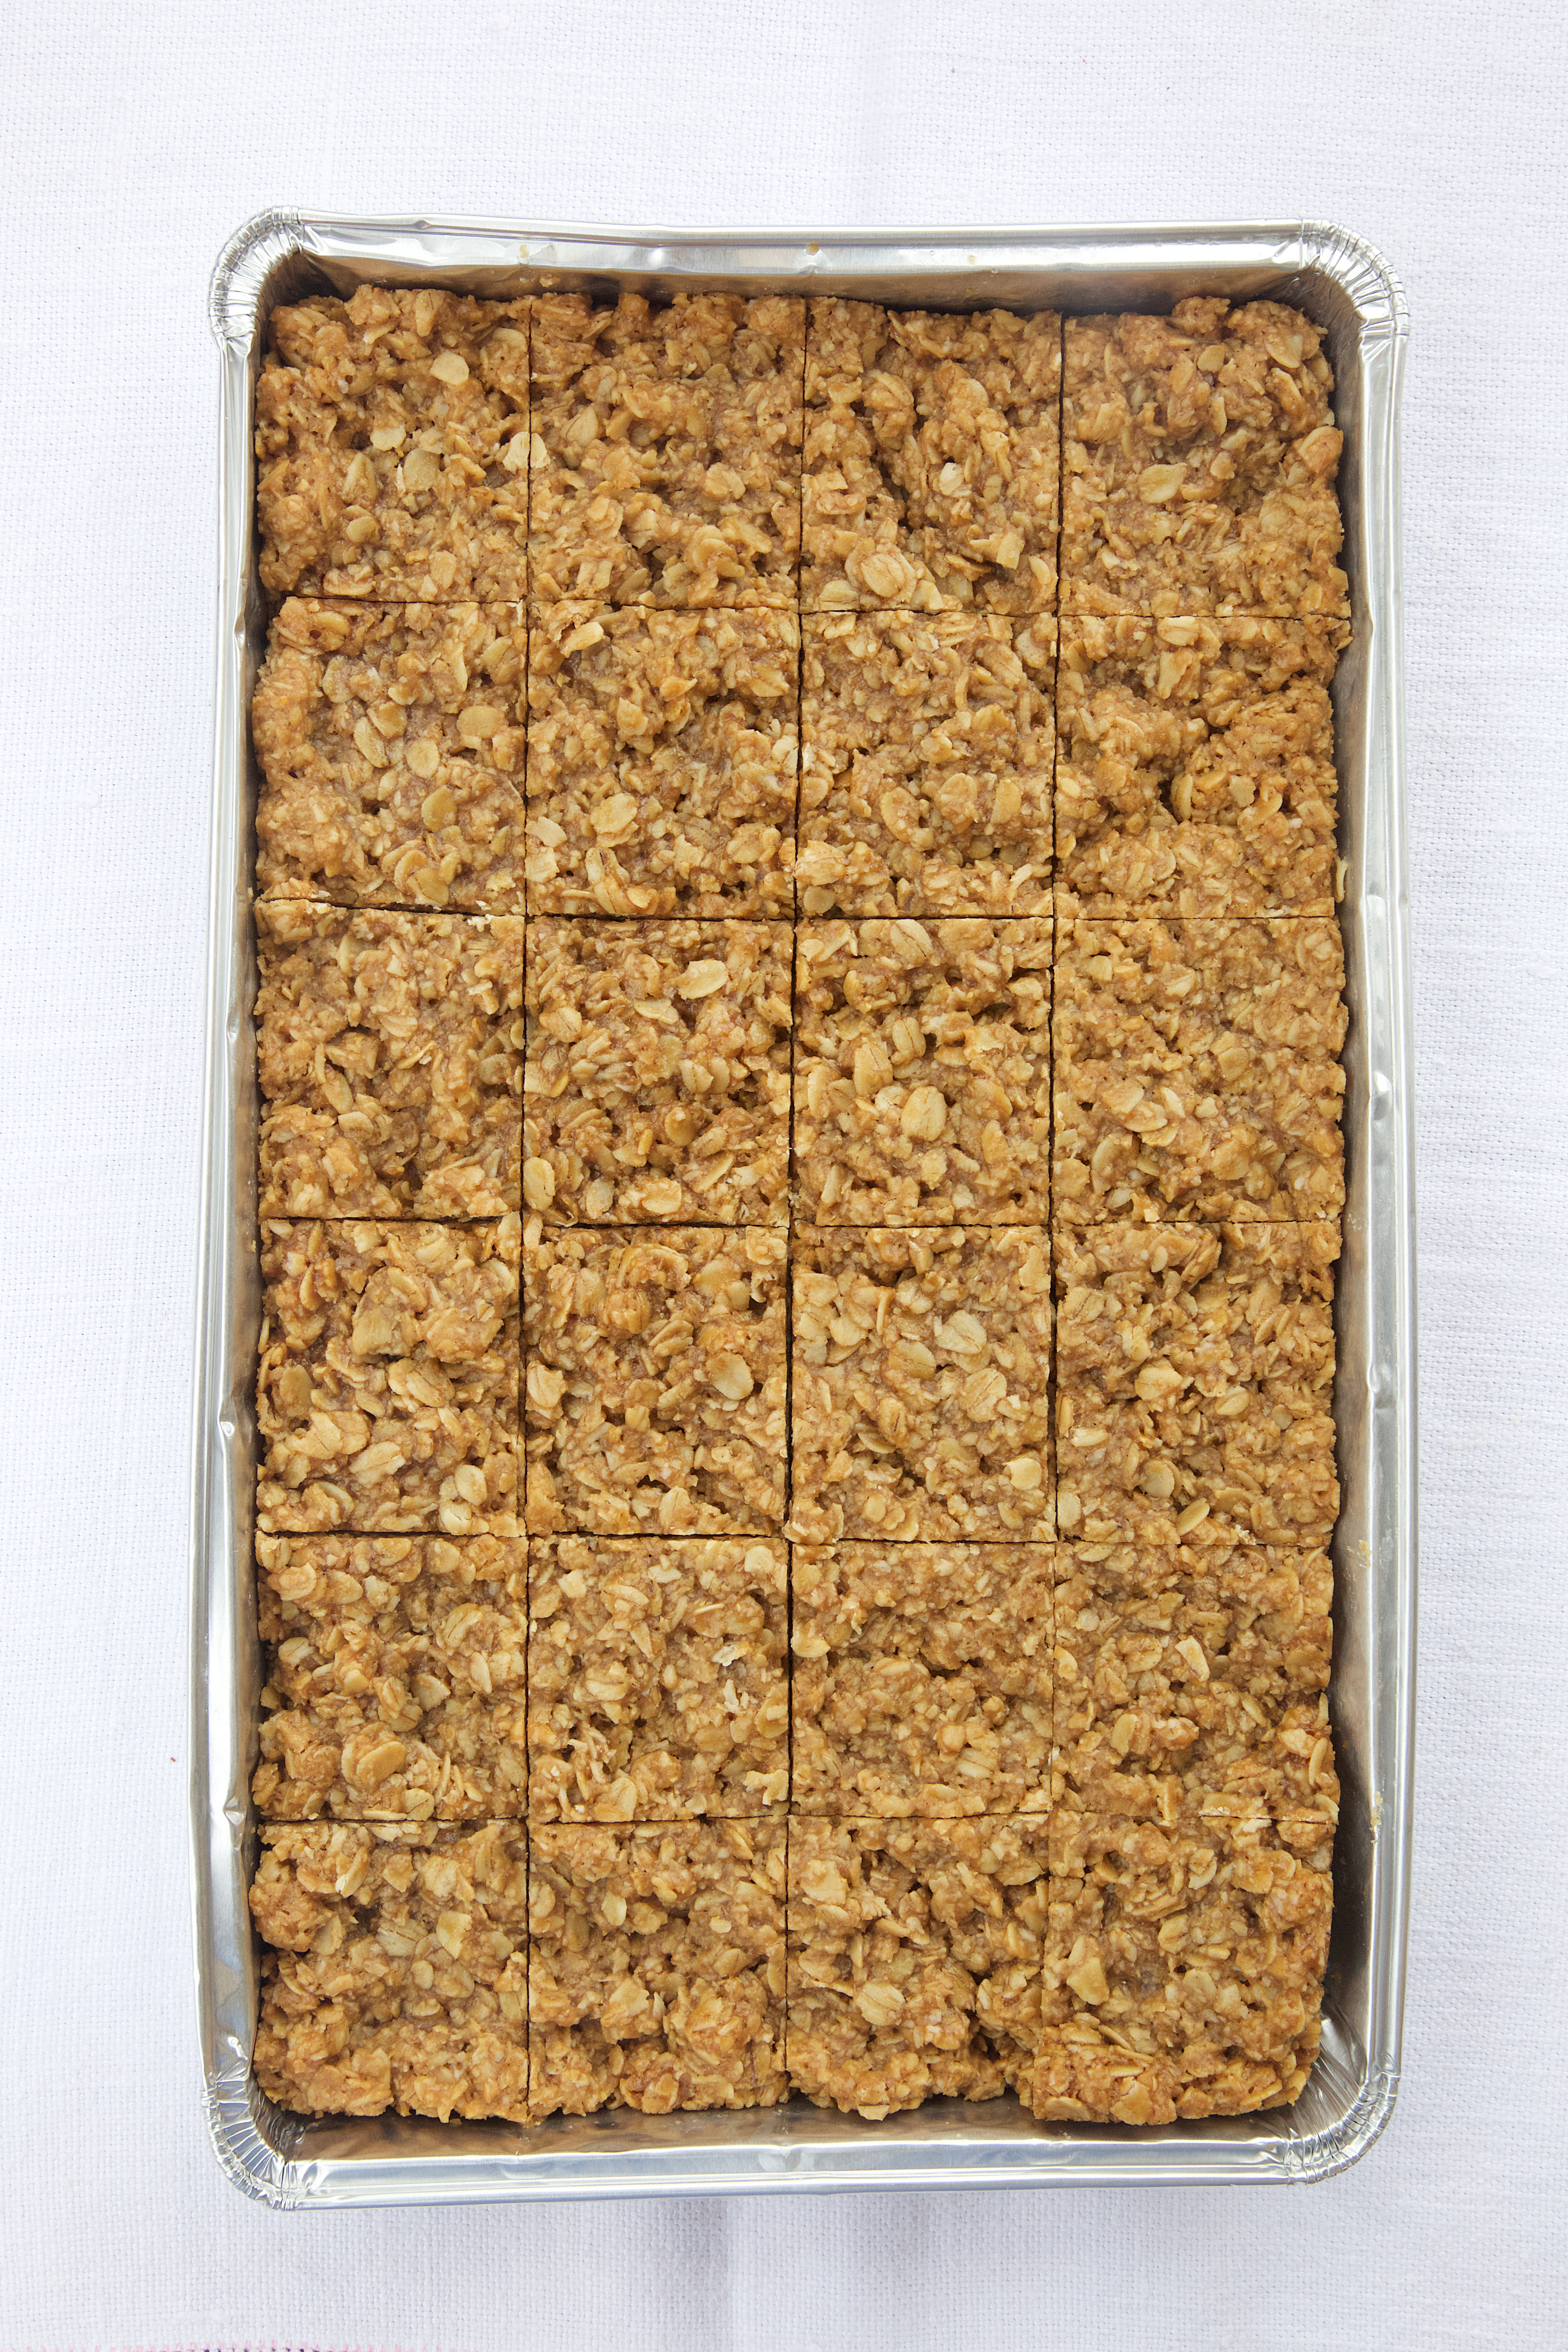 Special offer Oaty Coconut Bar pre-cut into 24 pieces